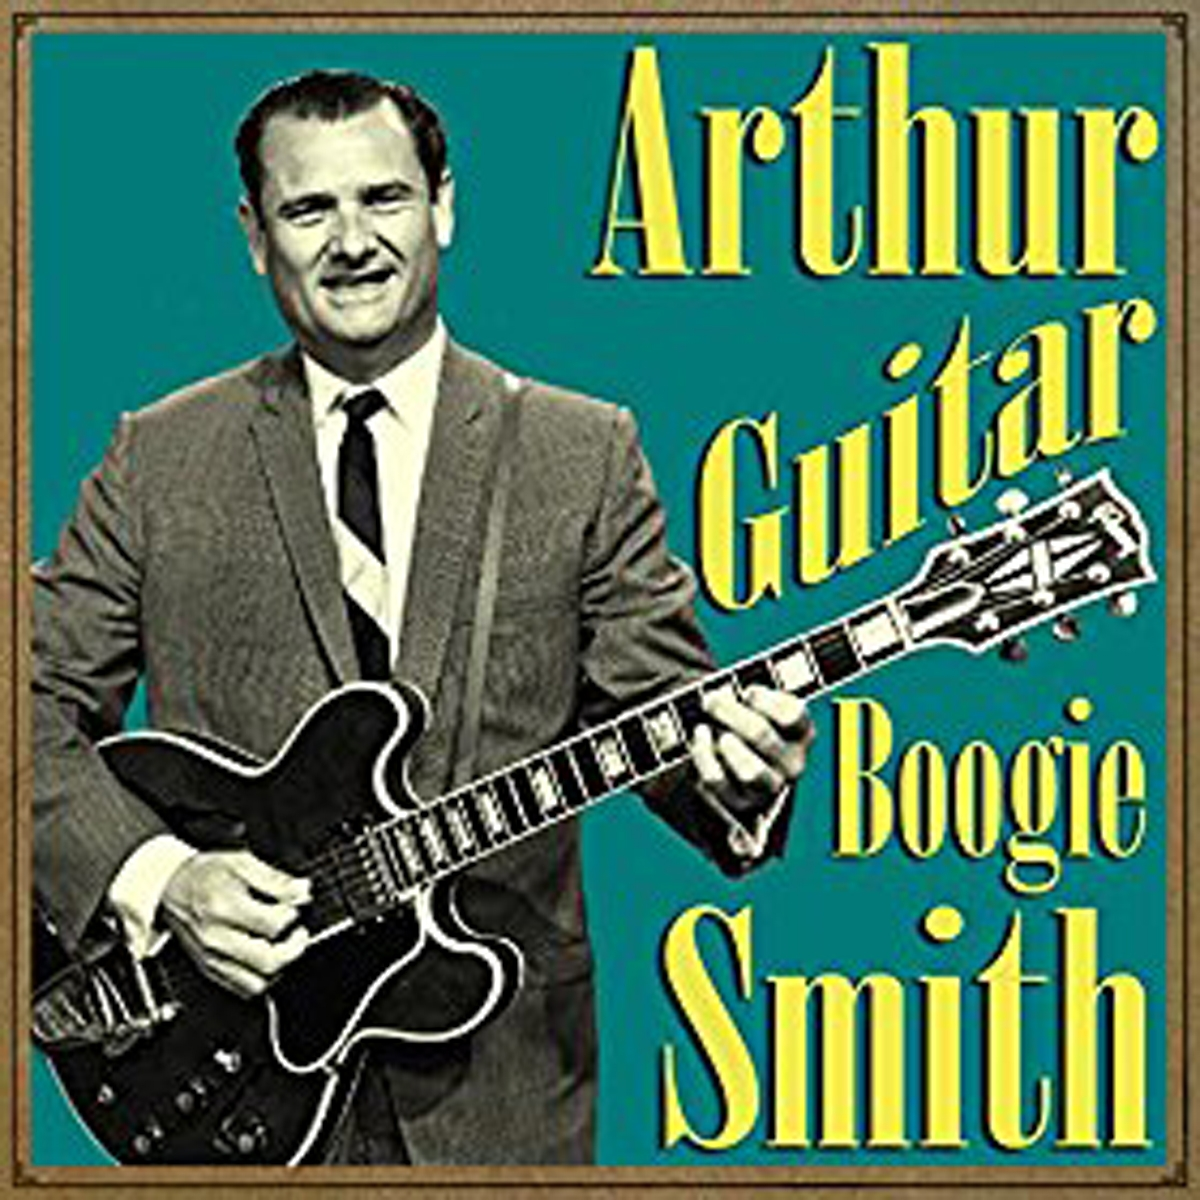 "Arthur Smith was born in Kershaw, South Carolina and at an early age developed a love for music.  His career as a recording artist began in 1936 when he wrote and recorded his first hit record ""Guitar Boogie"" in 1945.  Arthur re-recorded ""Guitar Boogie"" for MGM in 1948, and it became the first guitar instrumental to climb the country charts. In 1943, Arthur moved to Charlotte North Carolina and took the job as a radio personality at WBT.  With hit records and his notoriety in radio and television, Arthur's career as an active performer spans more than 50 years.  Arthur ""Guitar Boogie"" Smith passed away in 2014."